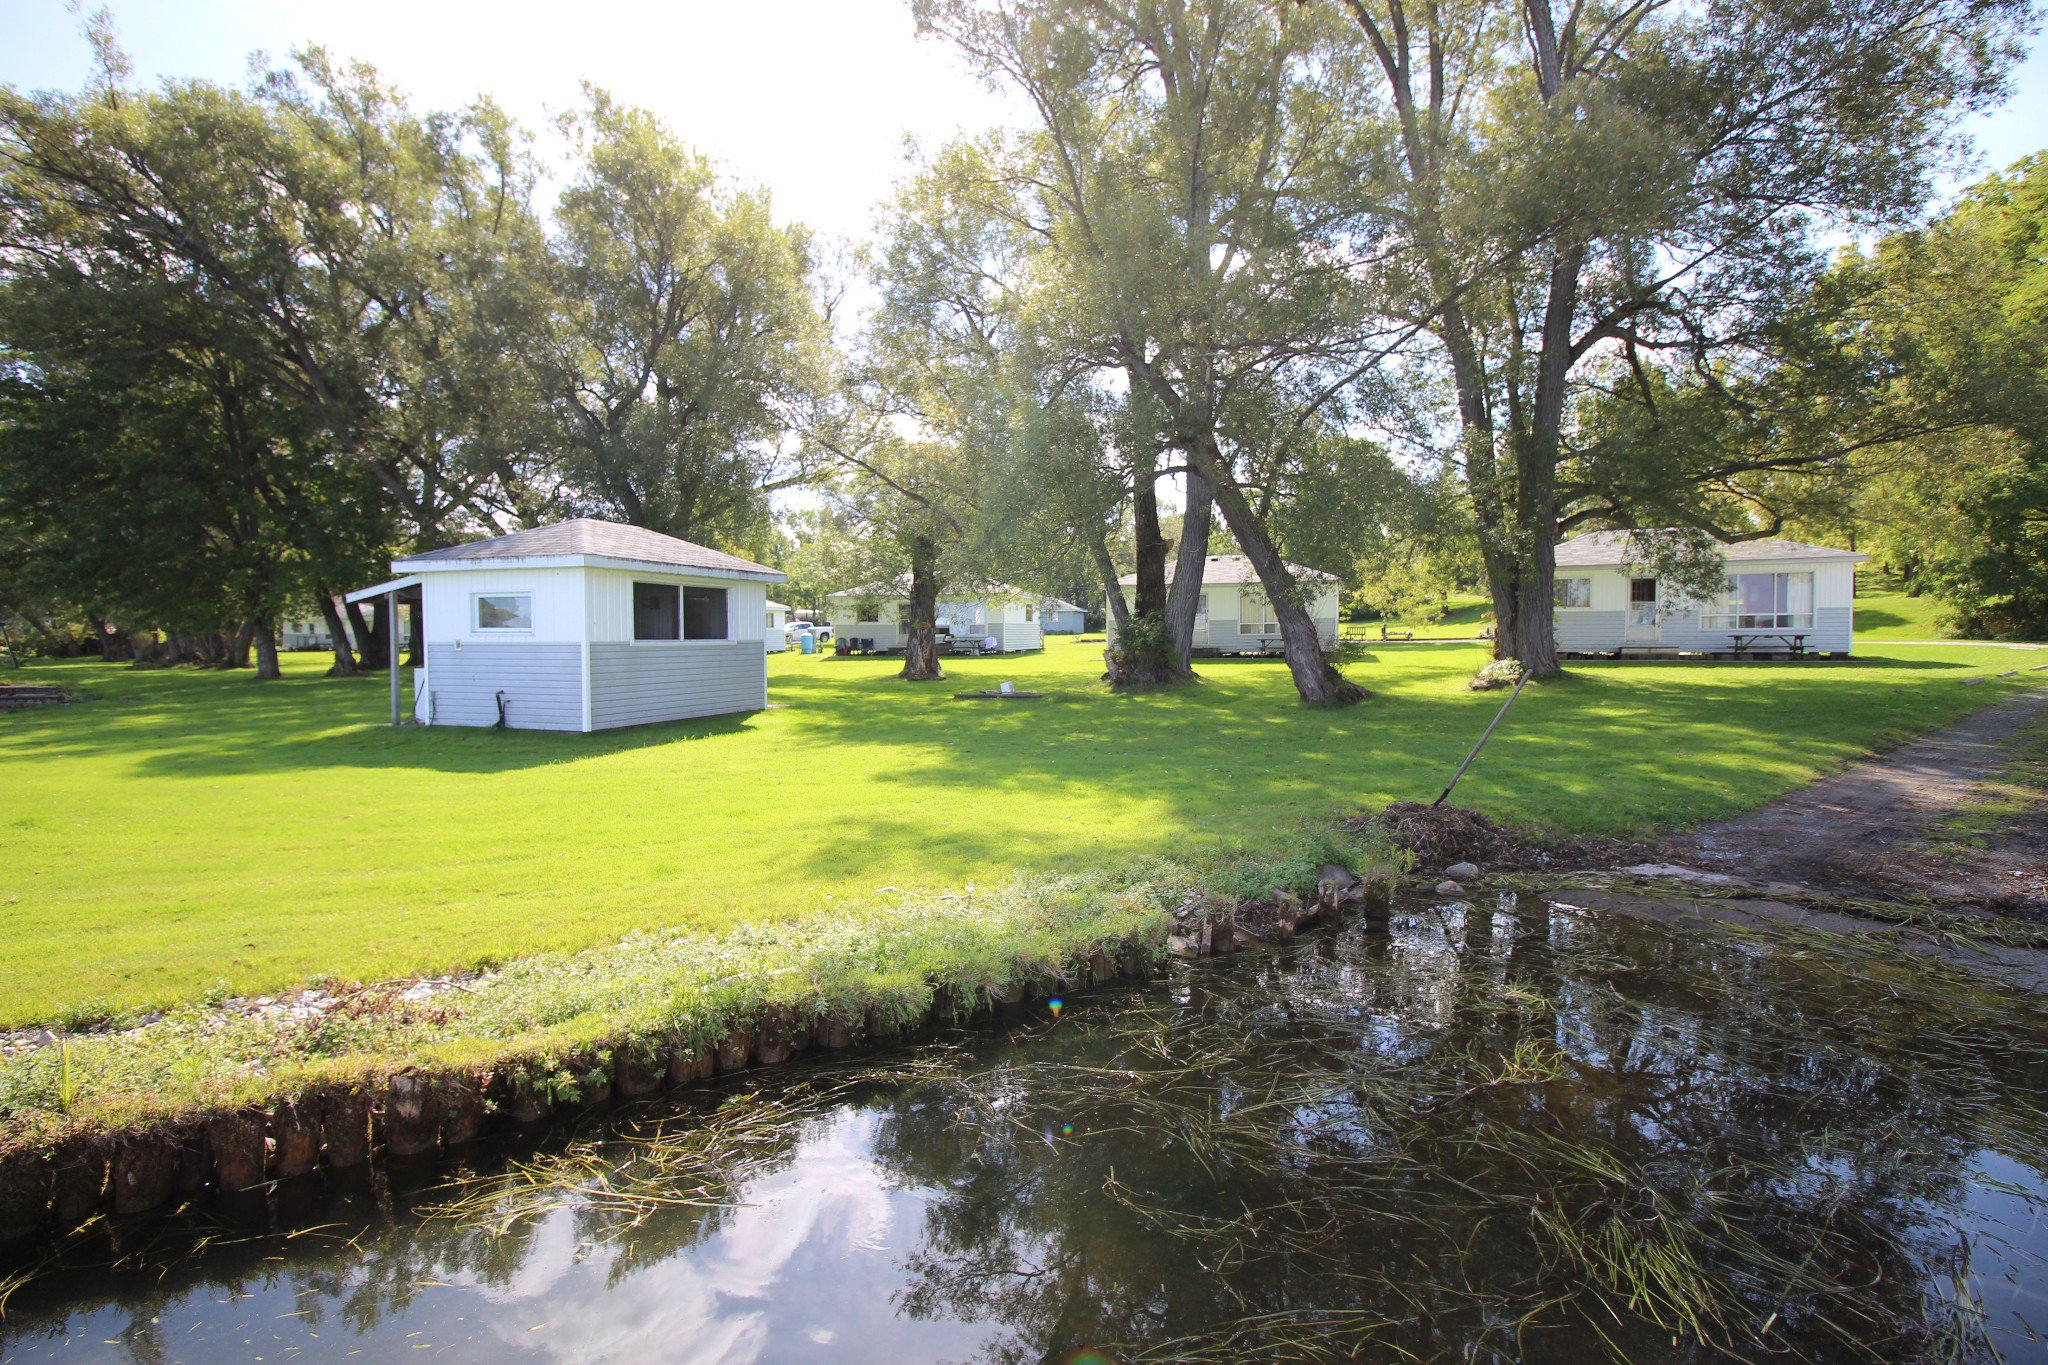 Photo 18: Photos: 6010 Rice Lake Scenic Drive in Harwood: Other for sale : MLS®# 223405